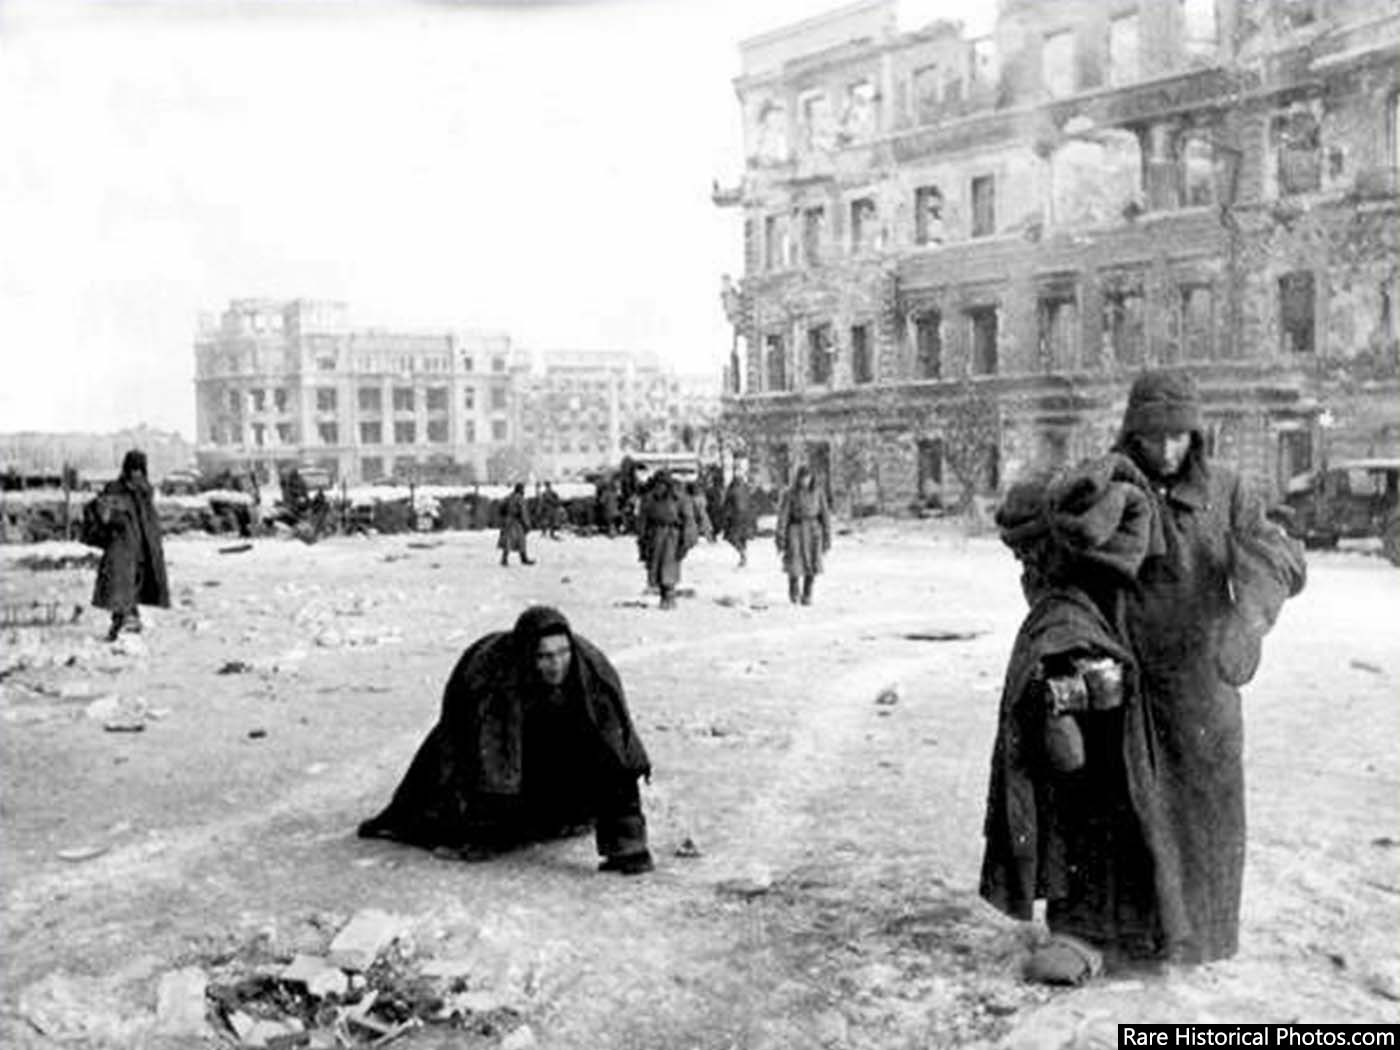 Captured German soldiers in a pathetic state at Stalingrad. 1943.